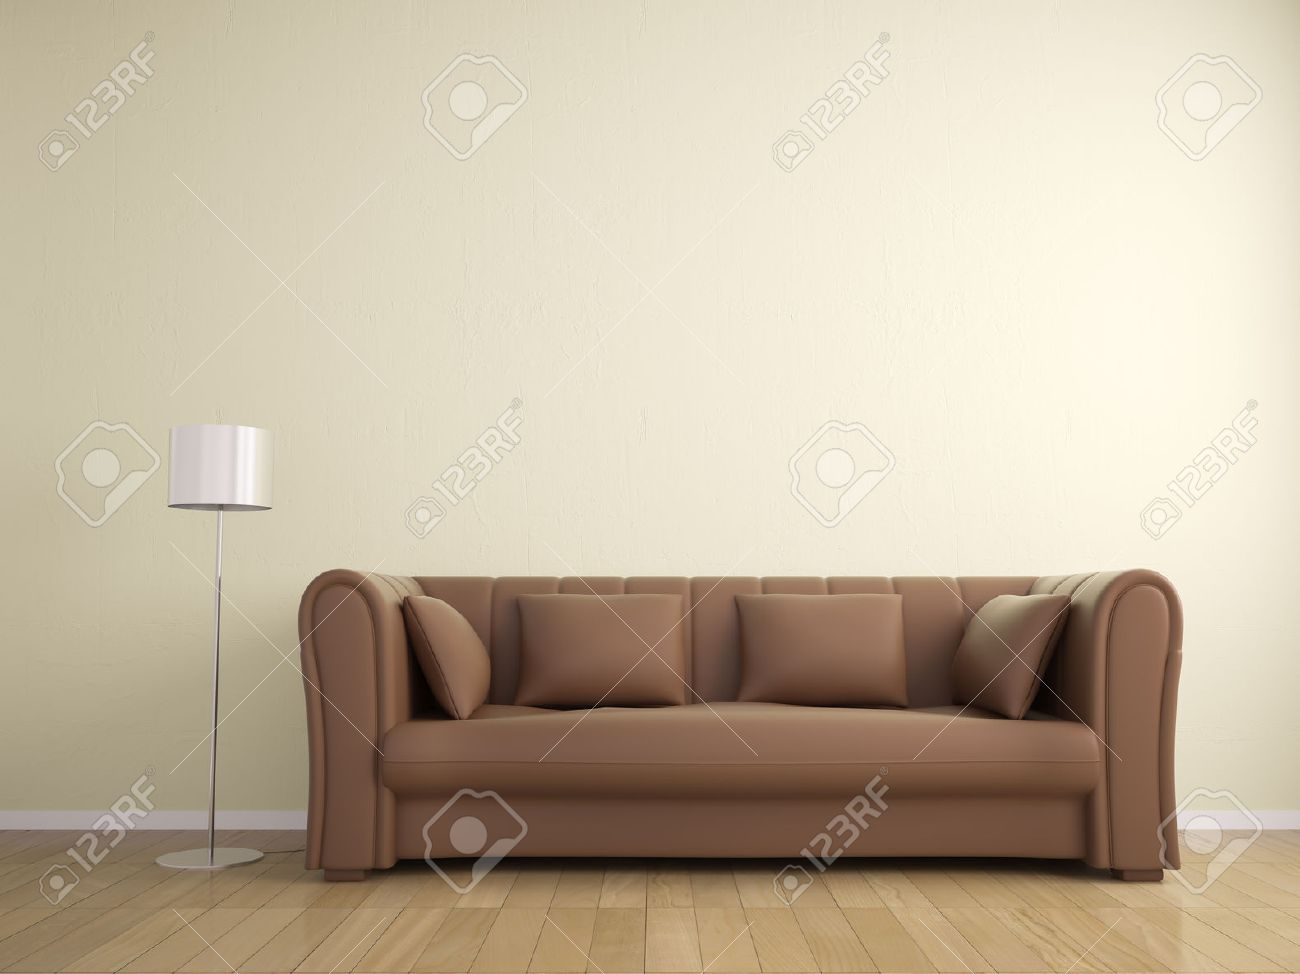 Sofa And Lamp Furniture Wall Beige Color Interior Stock Photo  # Muebles Panorama